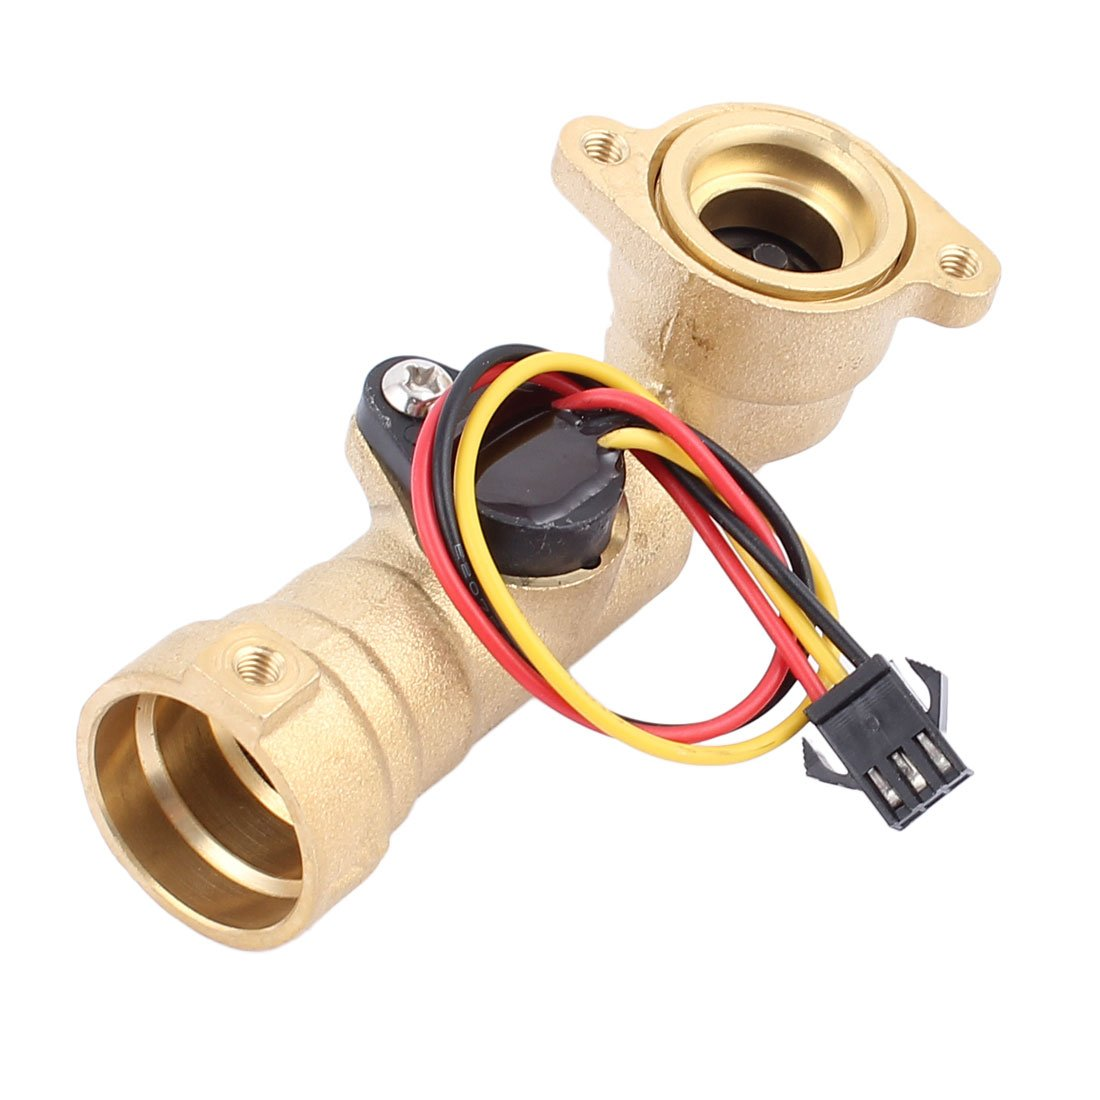 sourcingmap G1/2' Thread Hall Effect Liquid Water Flow Sensor Flowmeter Fluidmeter 1-30L/min 84.5mm Long a16042200ux0976